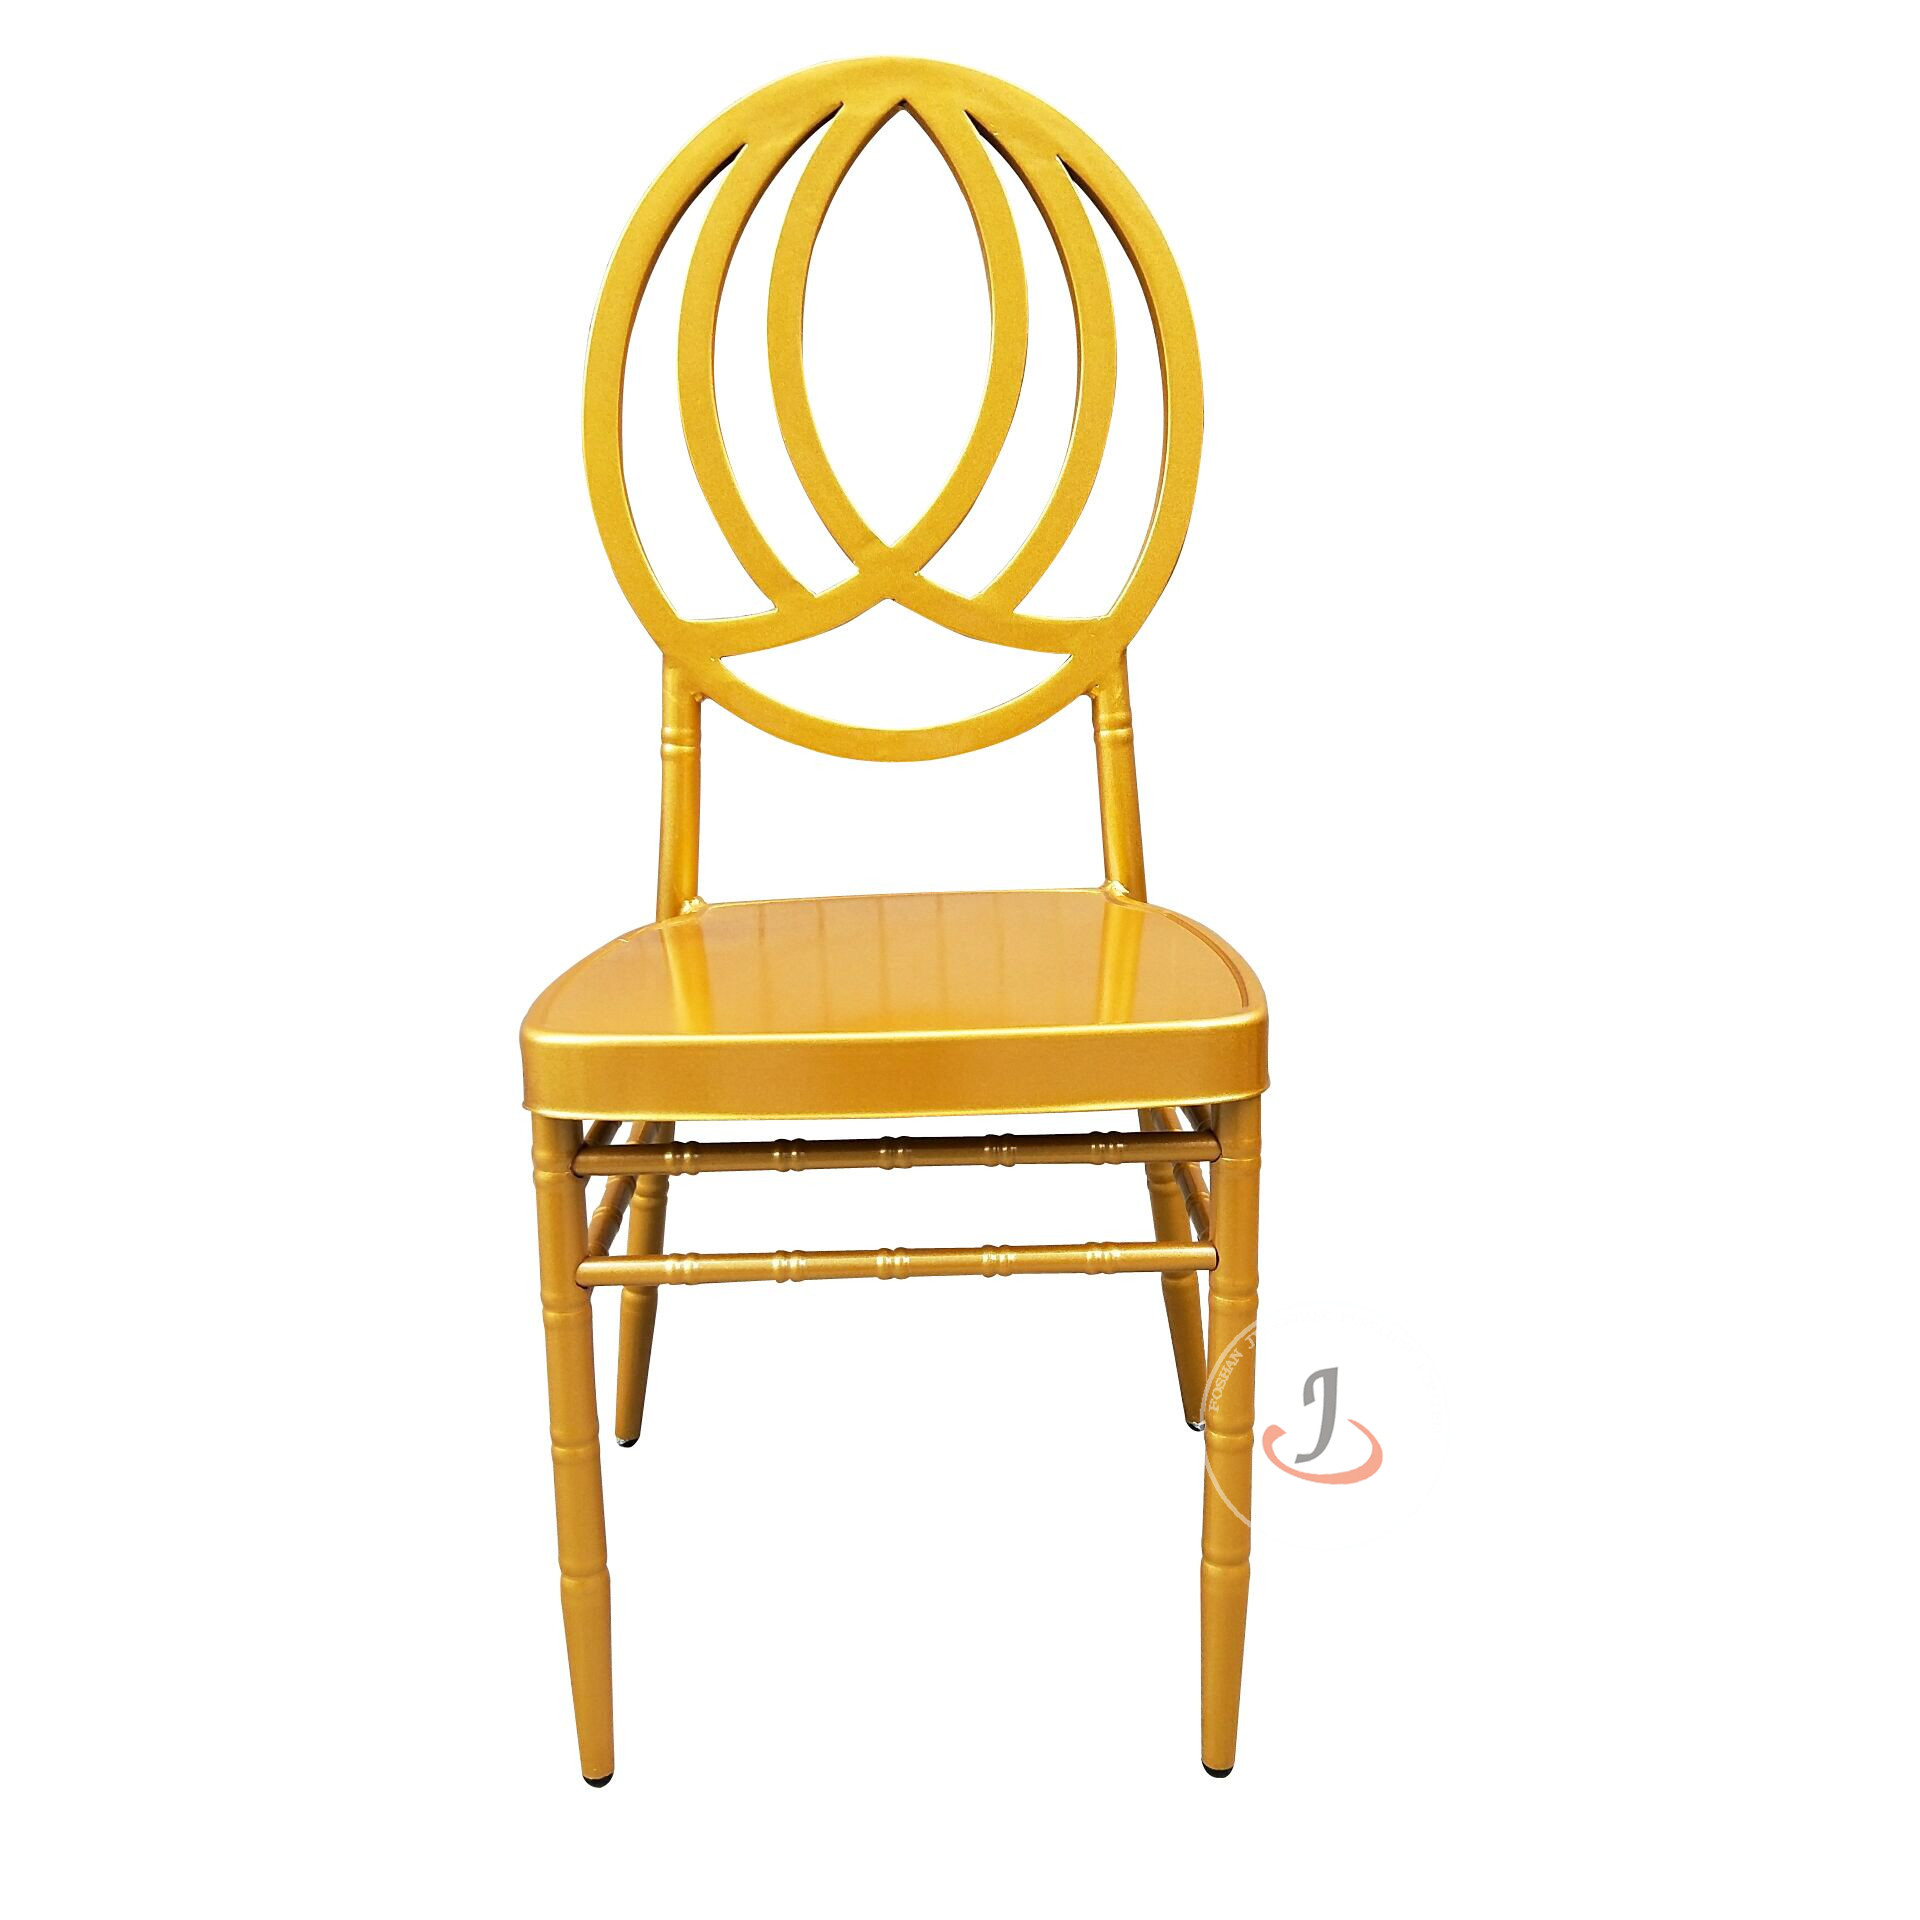 Top Quality Foldable Theater Auditorium Chair -